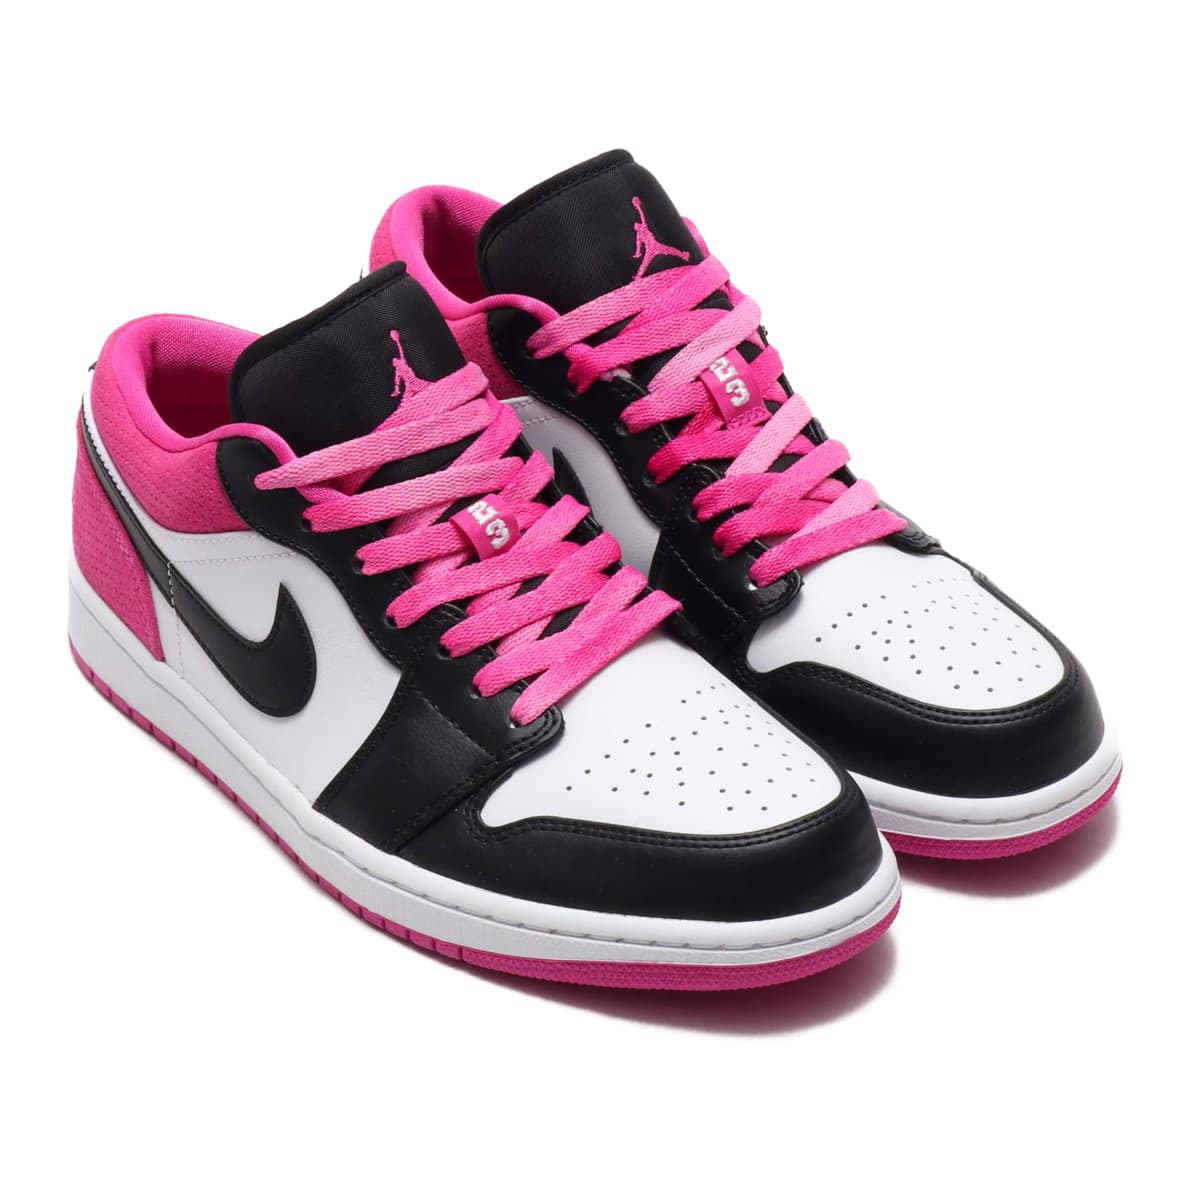 JORDAN BRAND AIR JORDAN 1 LOW SE BLACK/BLACK-ACTIVE FUCHSIA-WHITE 20SU-S_photo_large